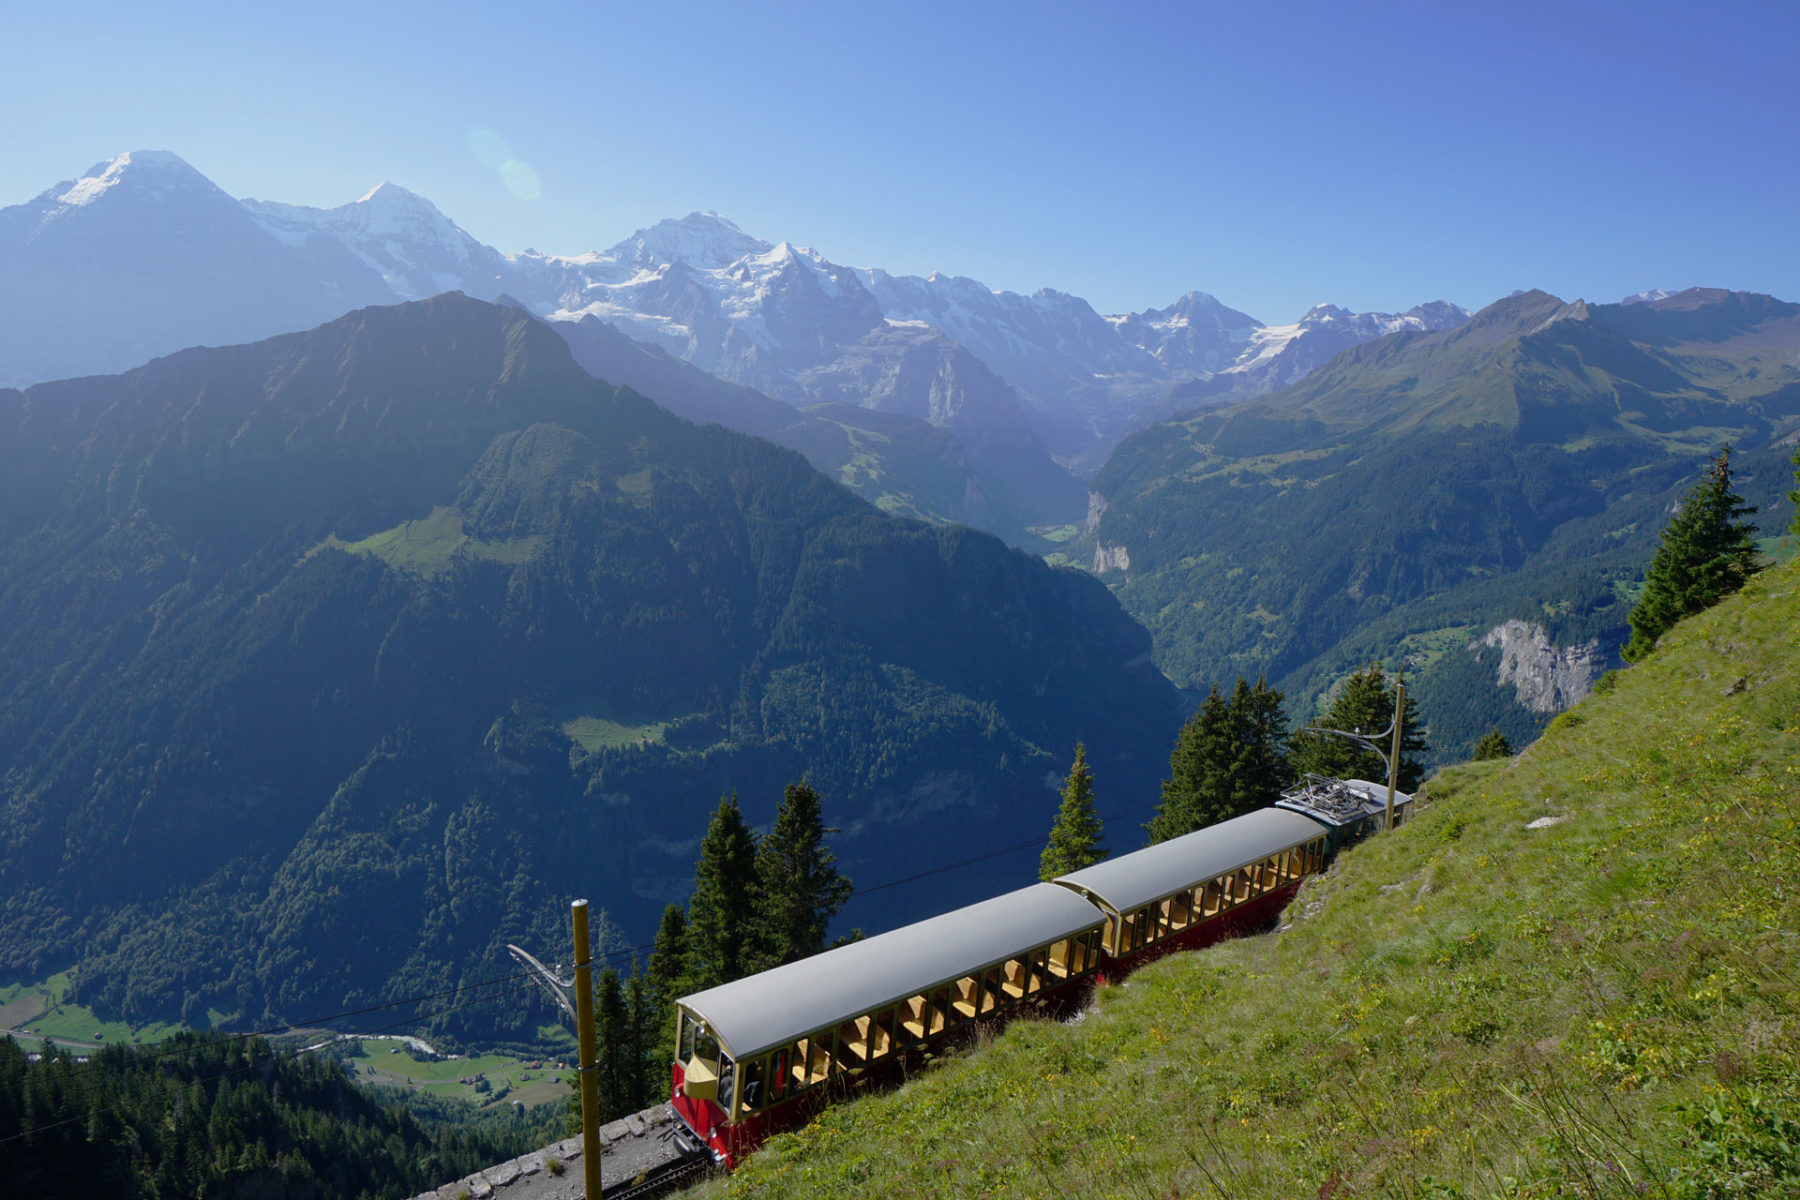 The Schynige Platte train approaching the upper station